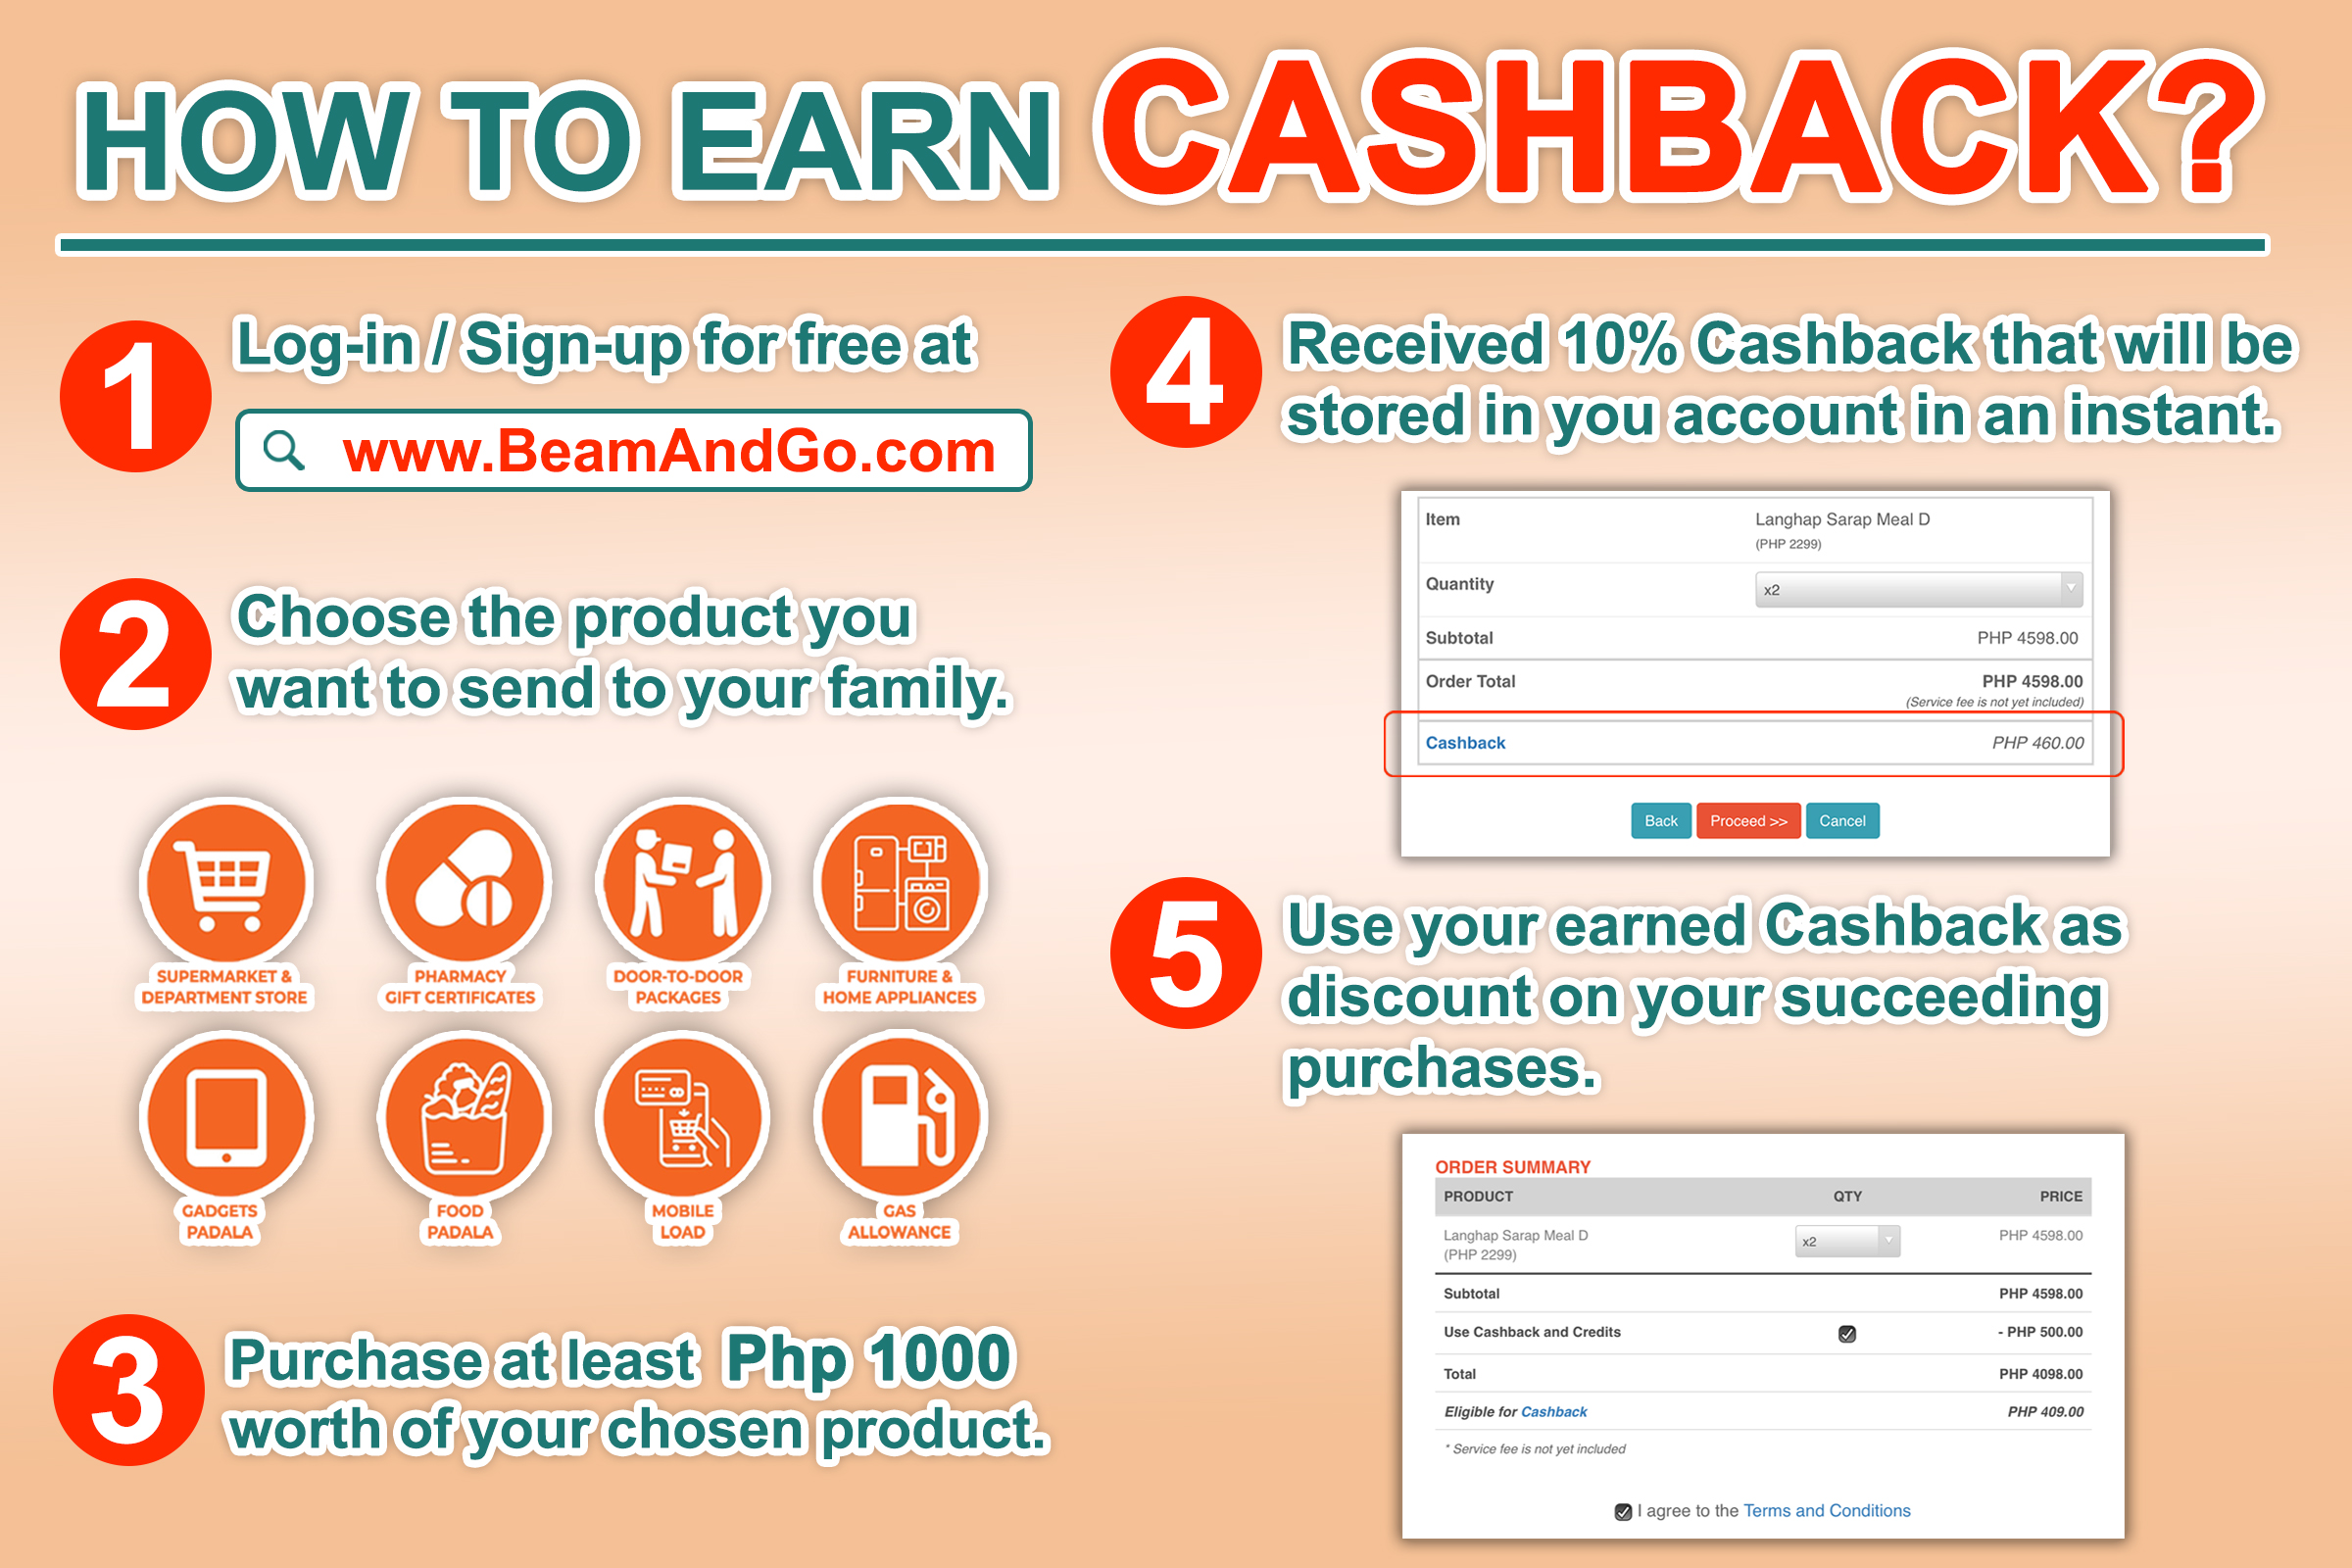 How to Earn Cashback.jpg